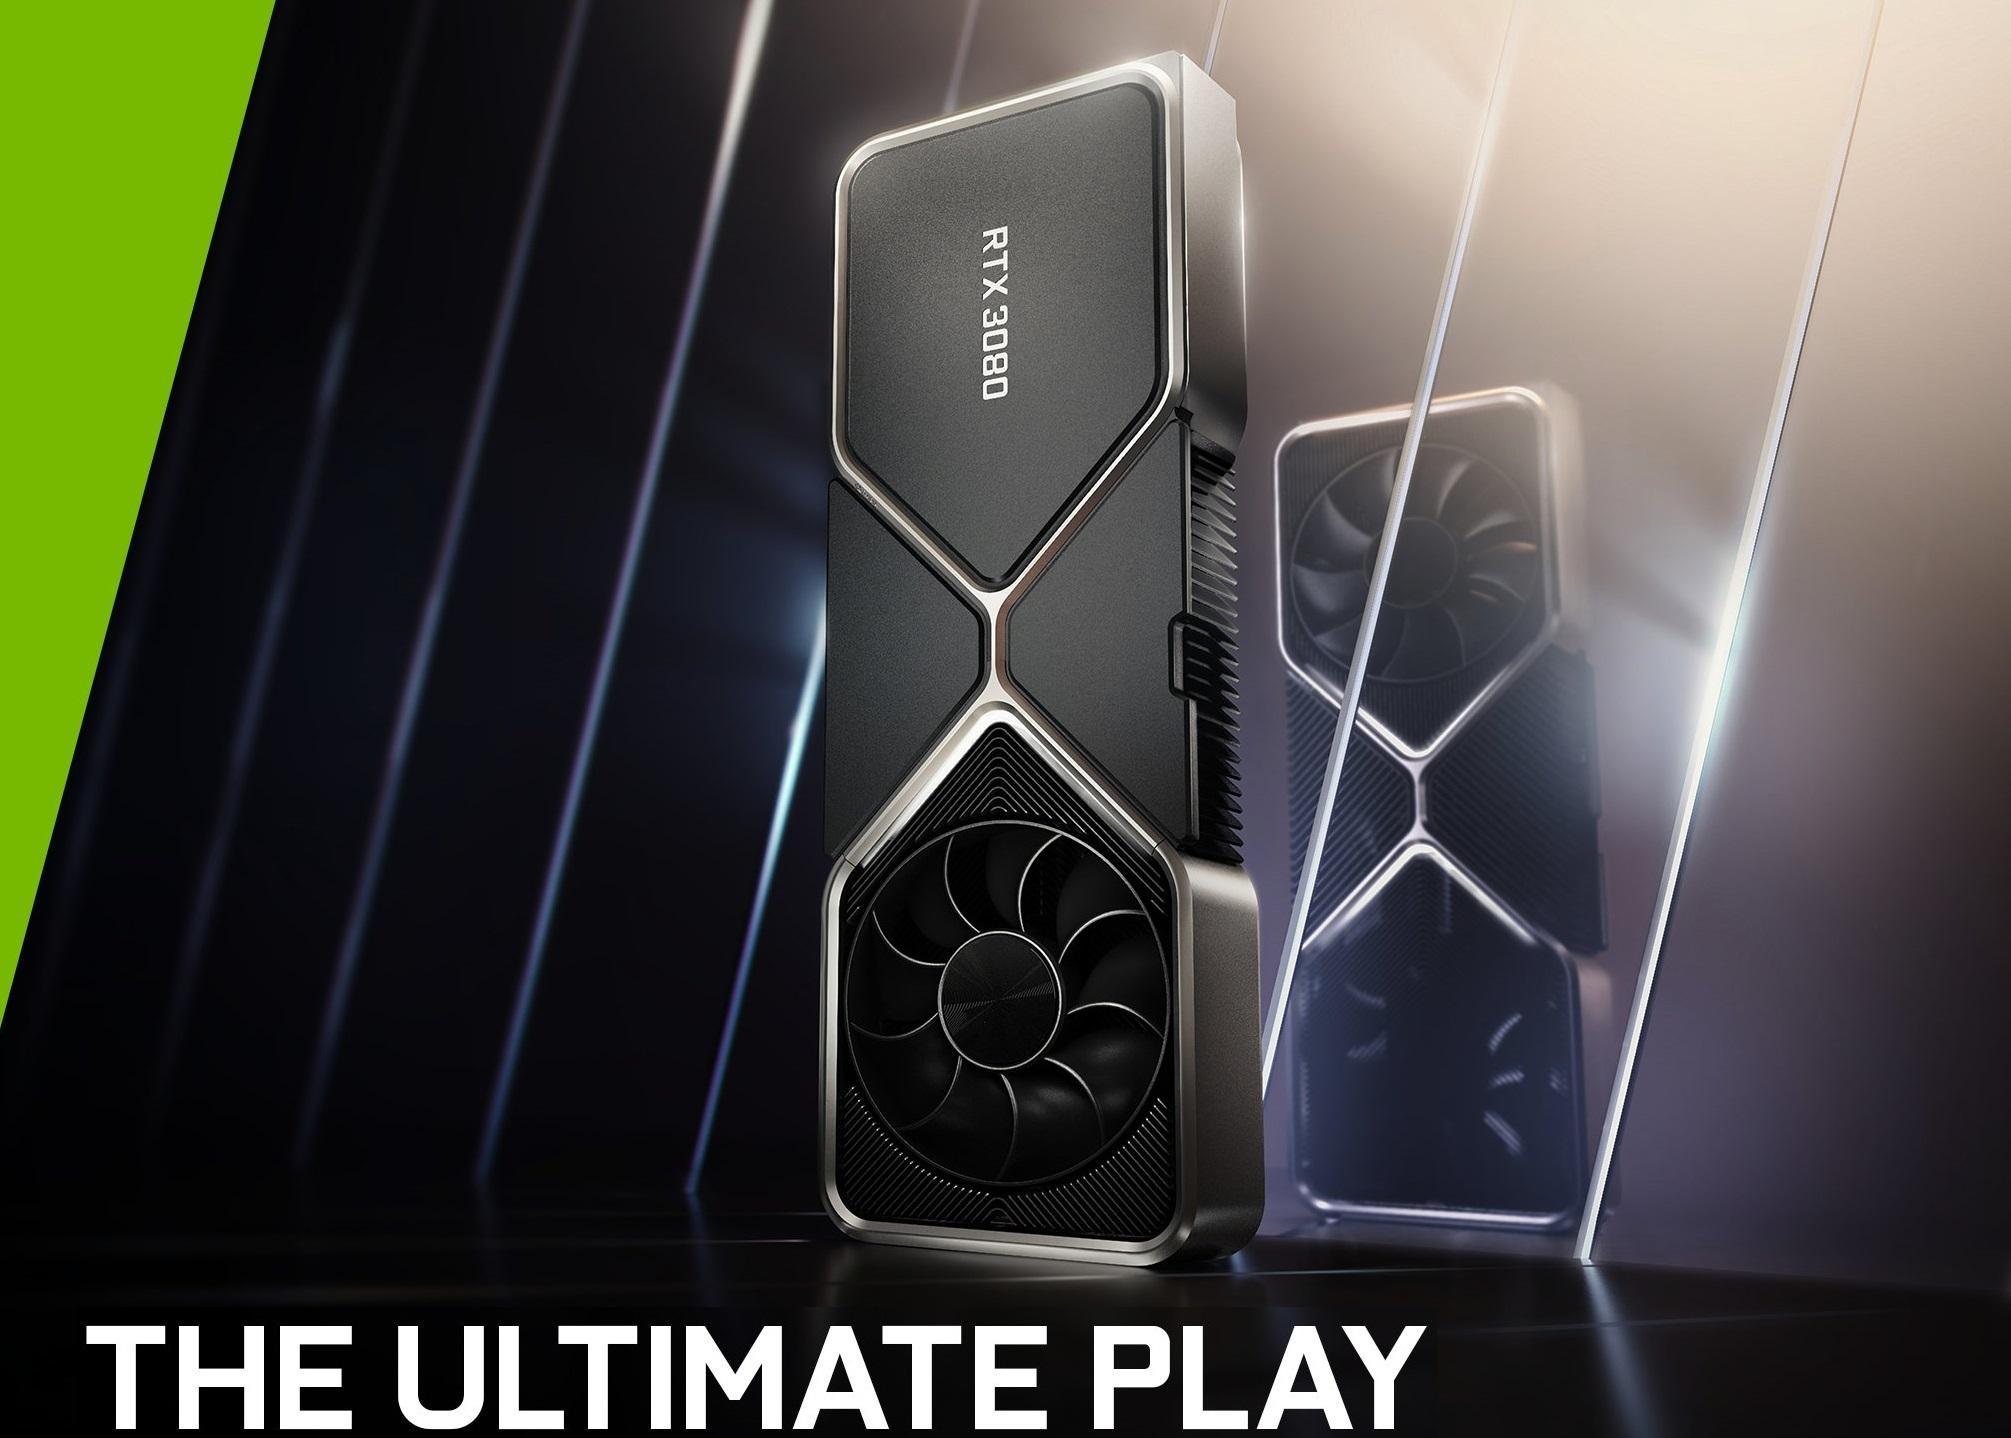 3080 rtx geforce nvidia graphics card fps delivers 4k gaming max aaa titles several